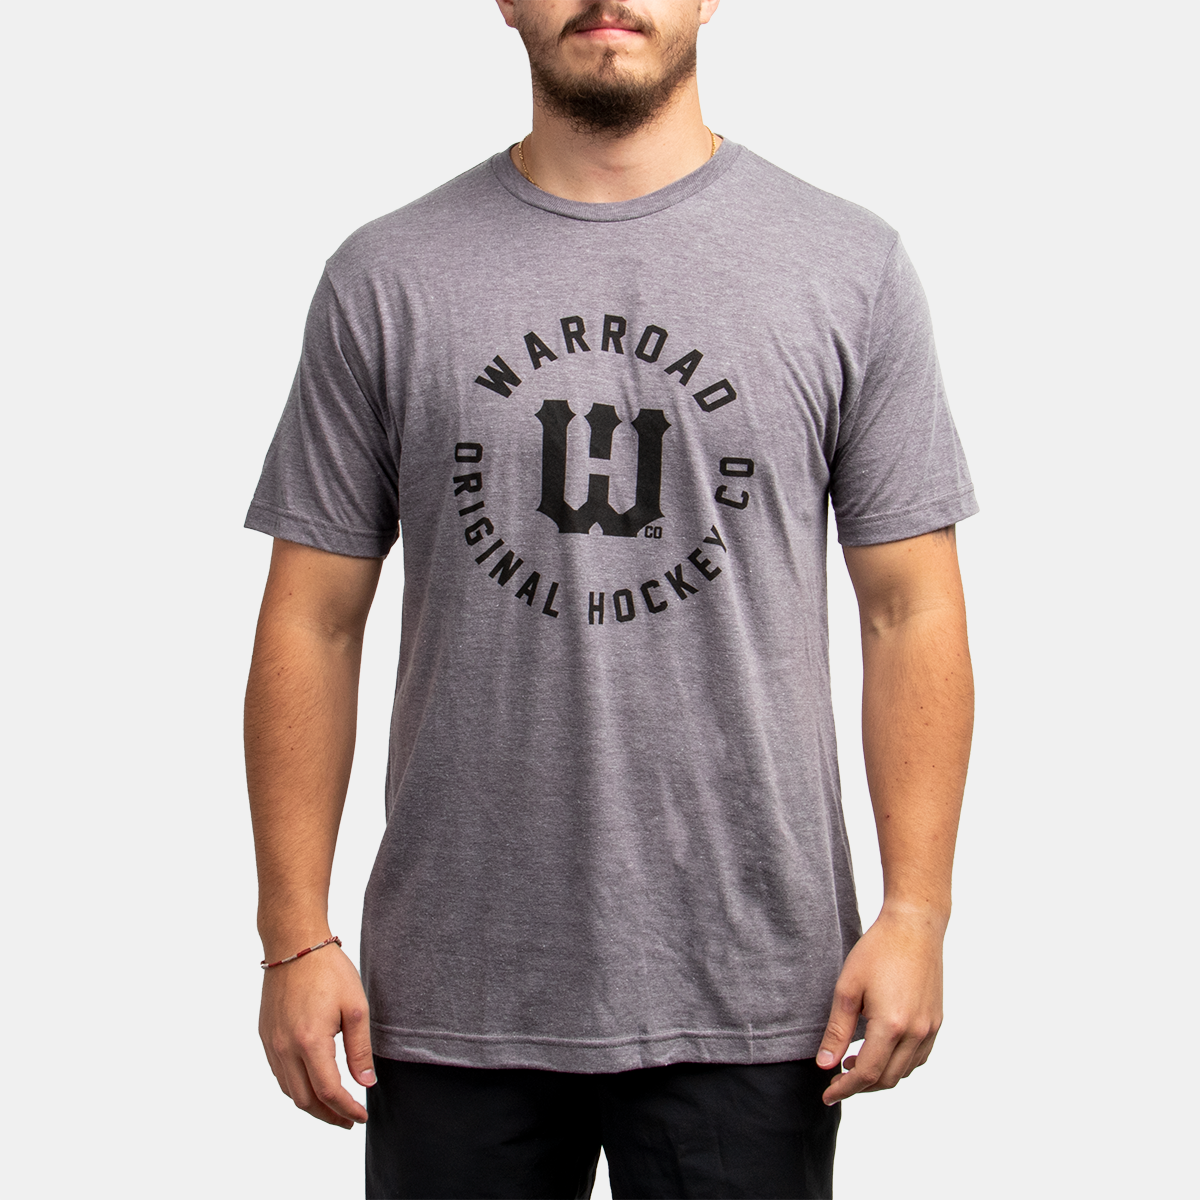 Warroad Player Collection Tee - Heather Grey